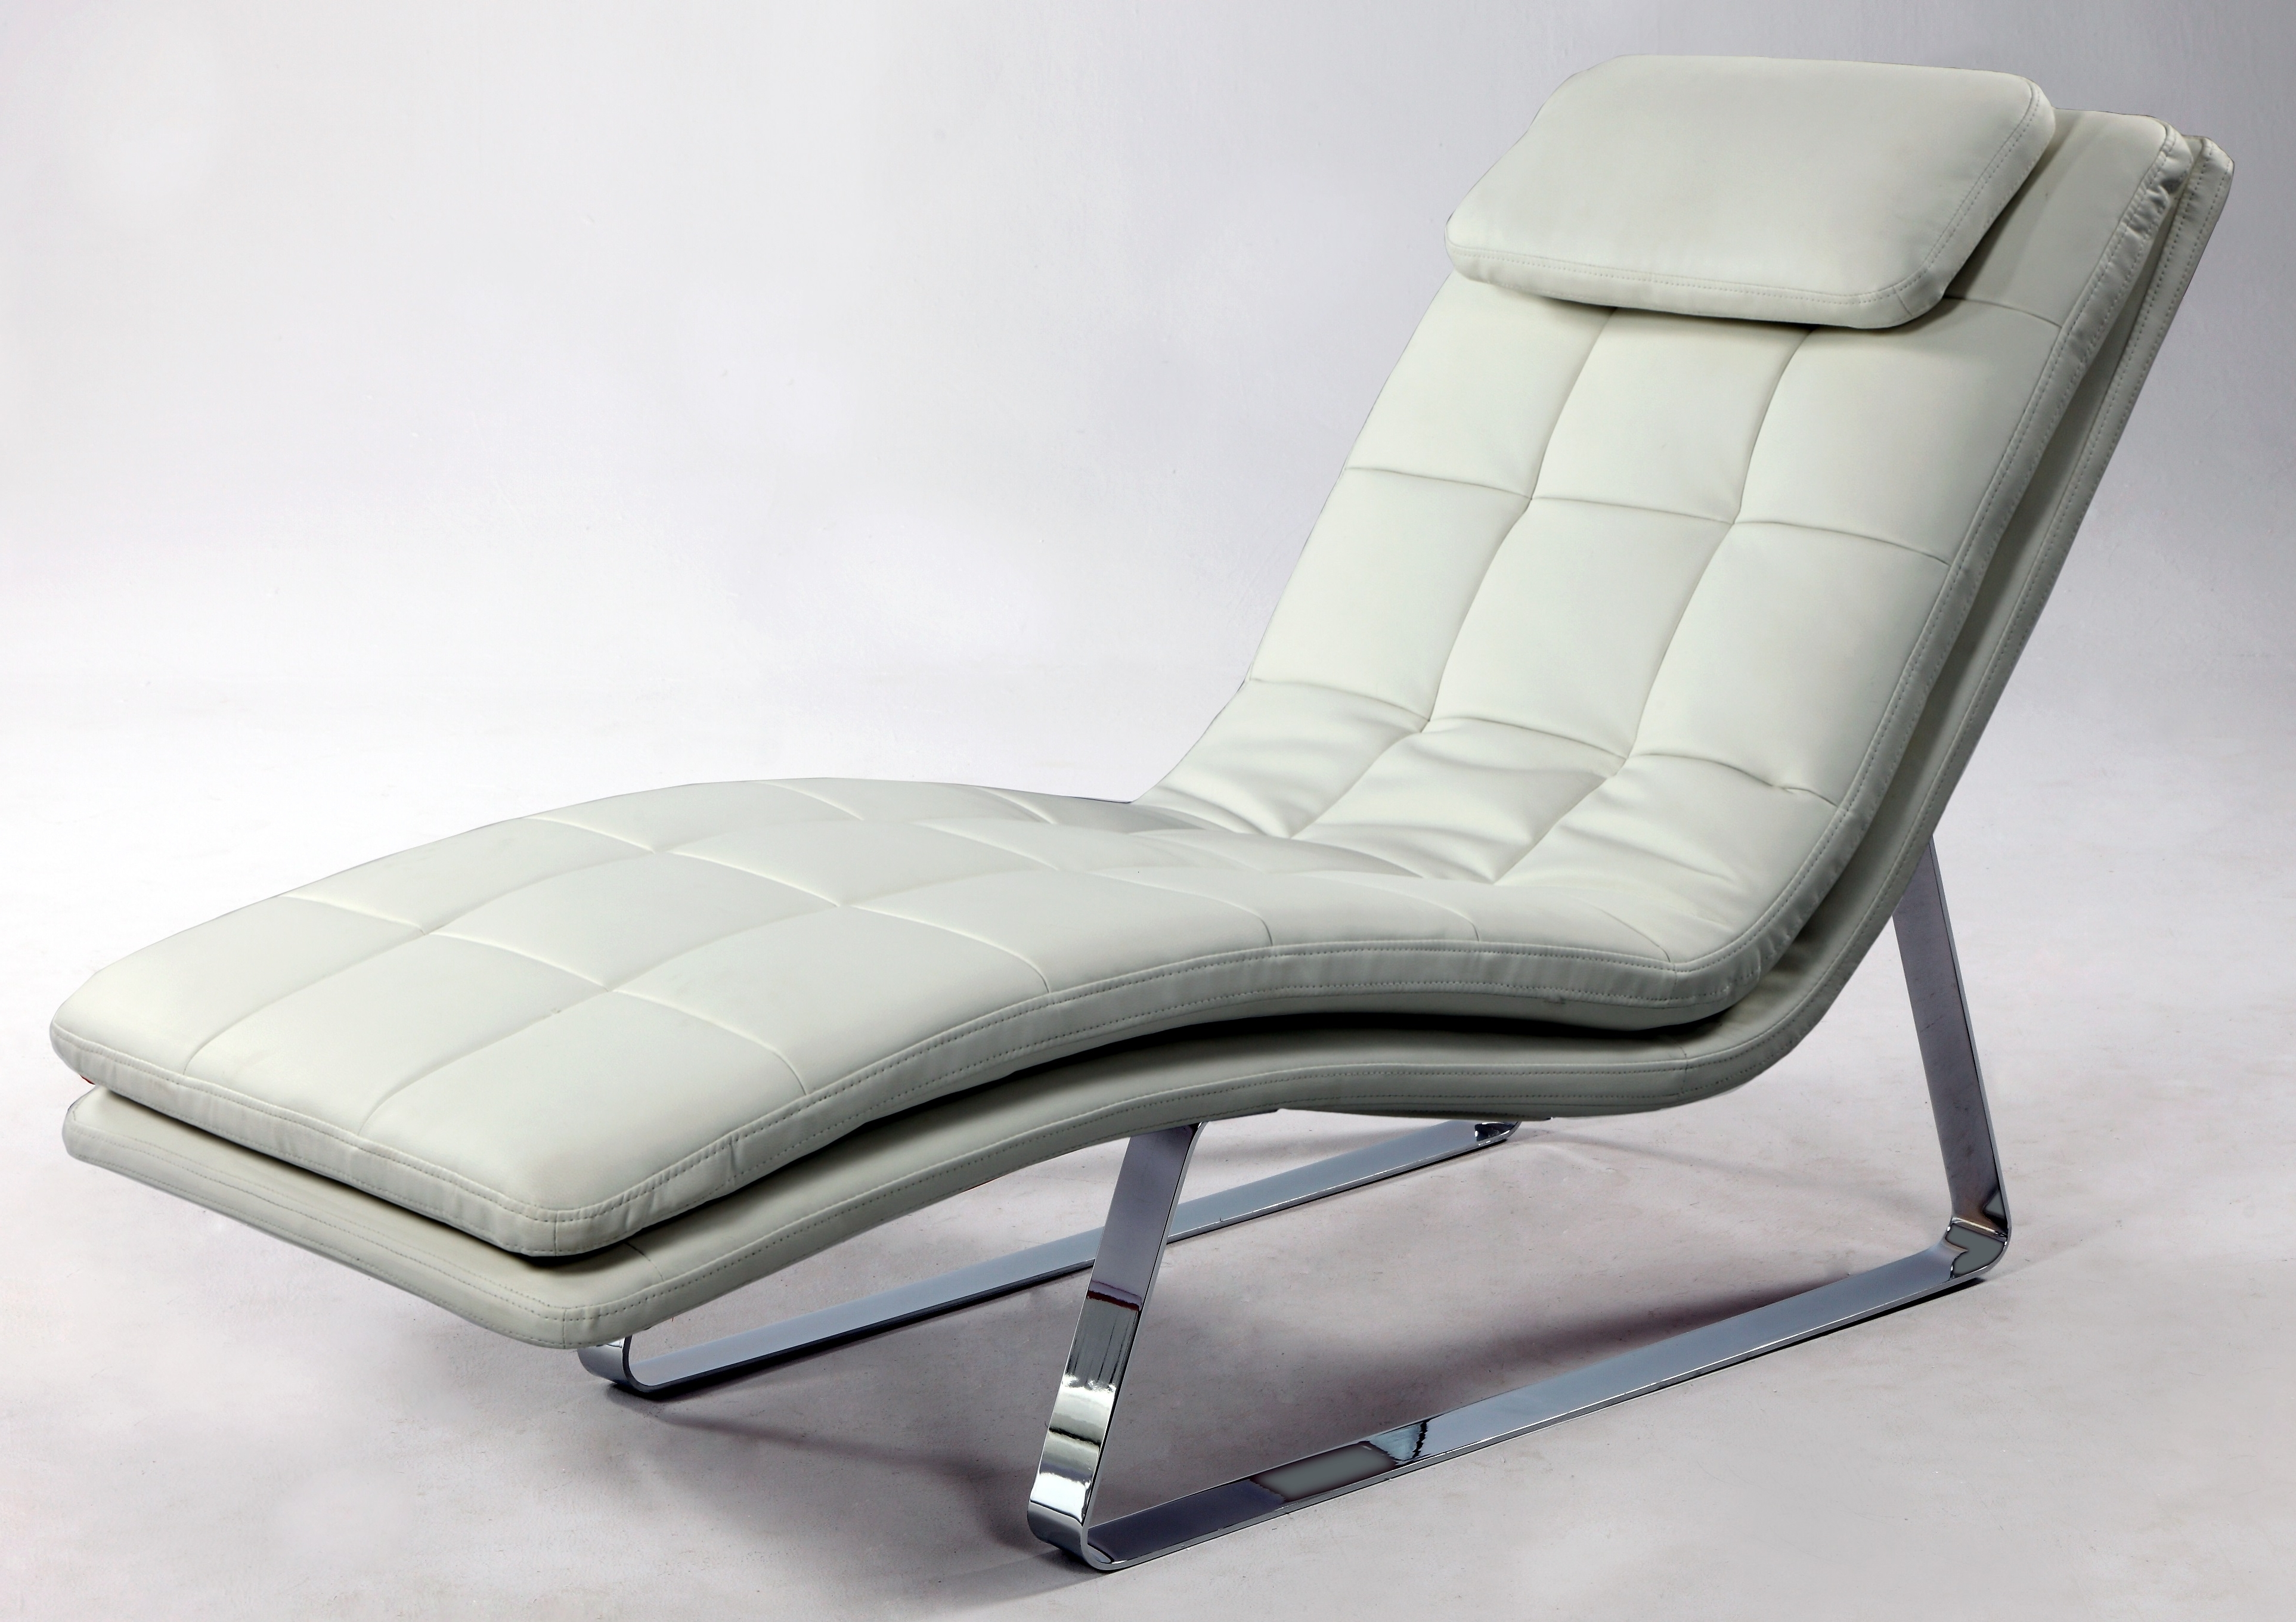 White Leather Chaise Lounges Pertaining To Newest Full Bonded Leather Tufted Chaise Lounge With Chrome Legs New York (View 13 of 15)